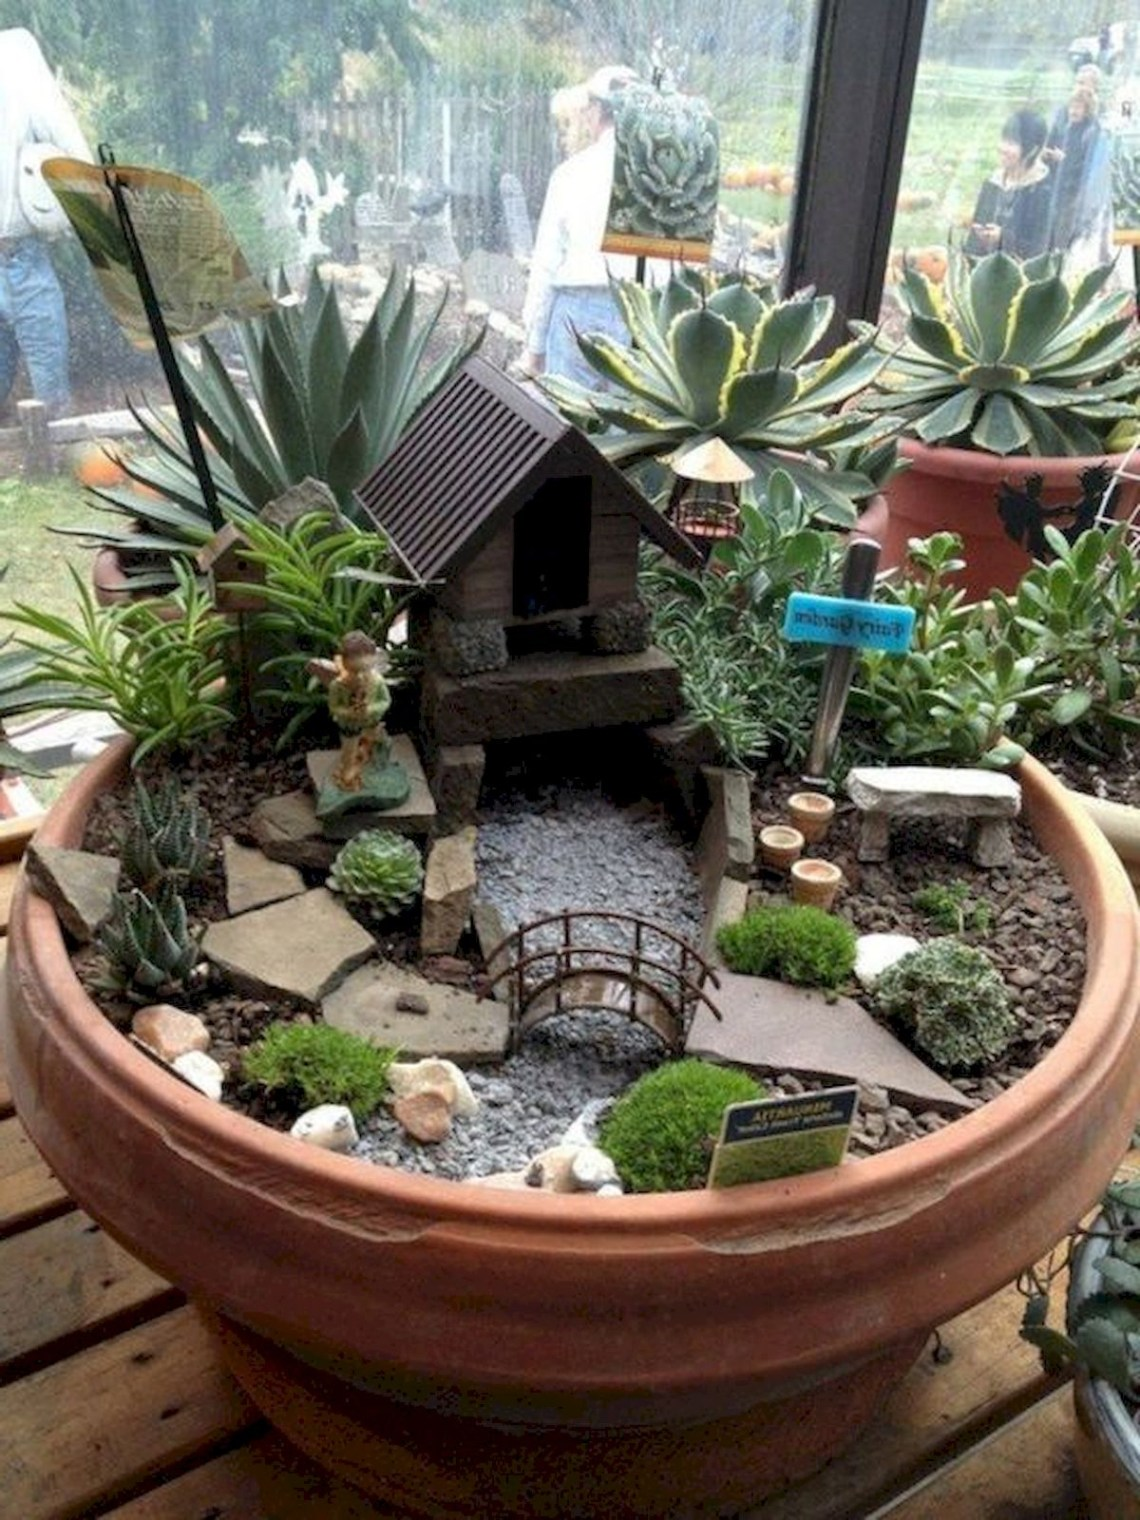 47 Amazing Miniature Garden Design Ideas 15 Ideaboz